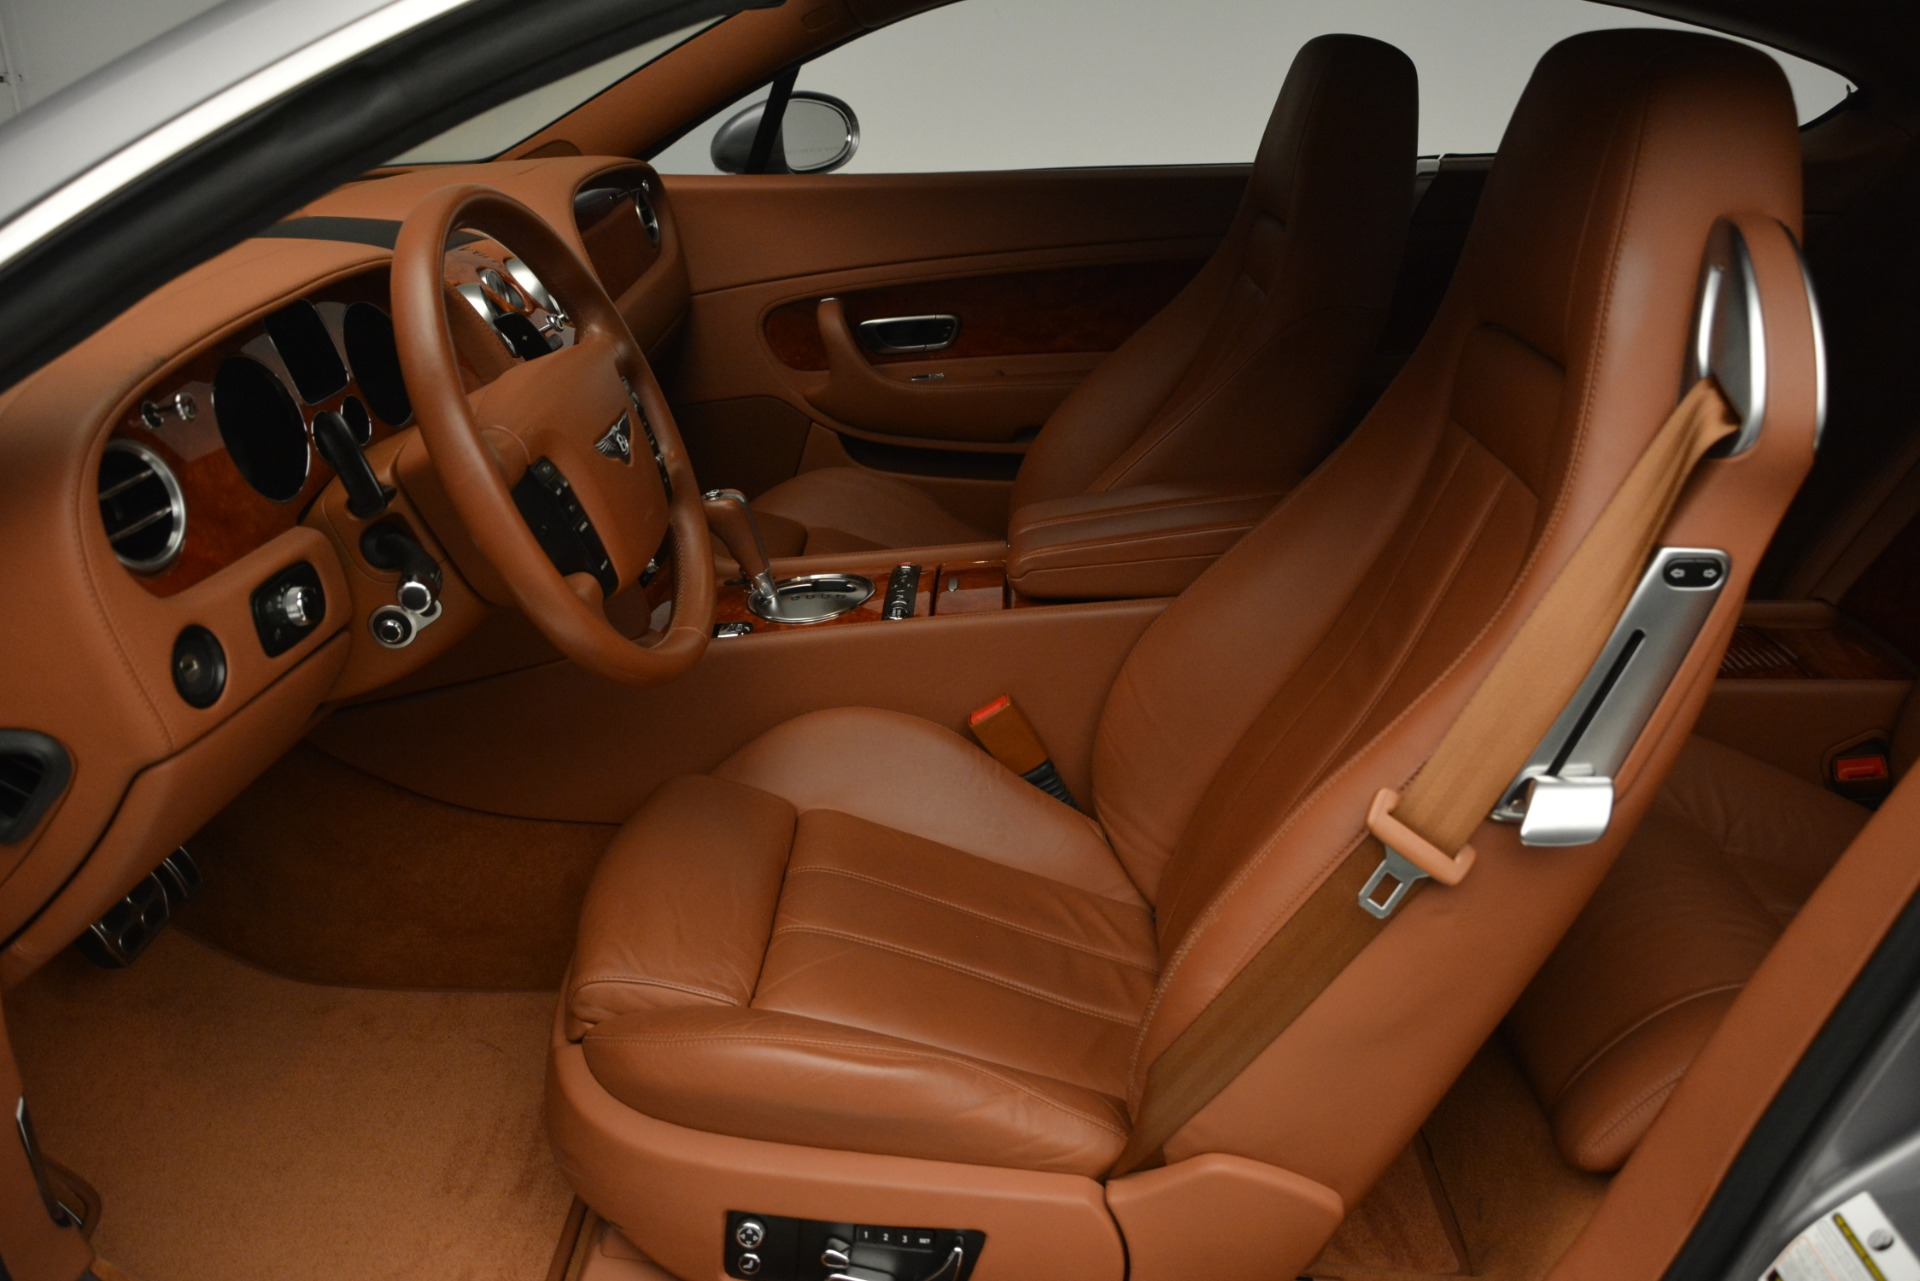 Used 2005 Bentley Continental GT GT Turbo For Sale In Greenwich, CT 2726_p18